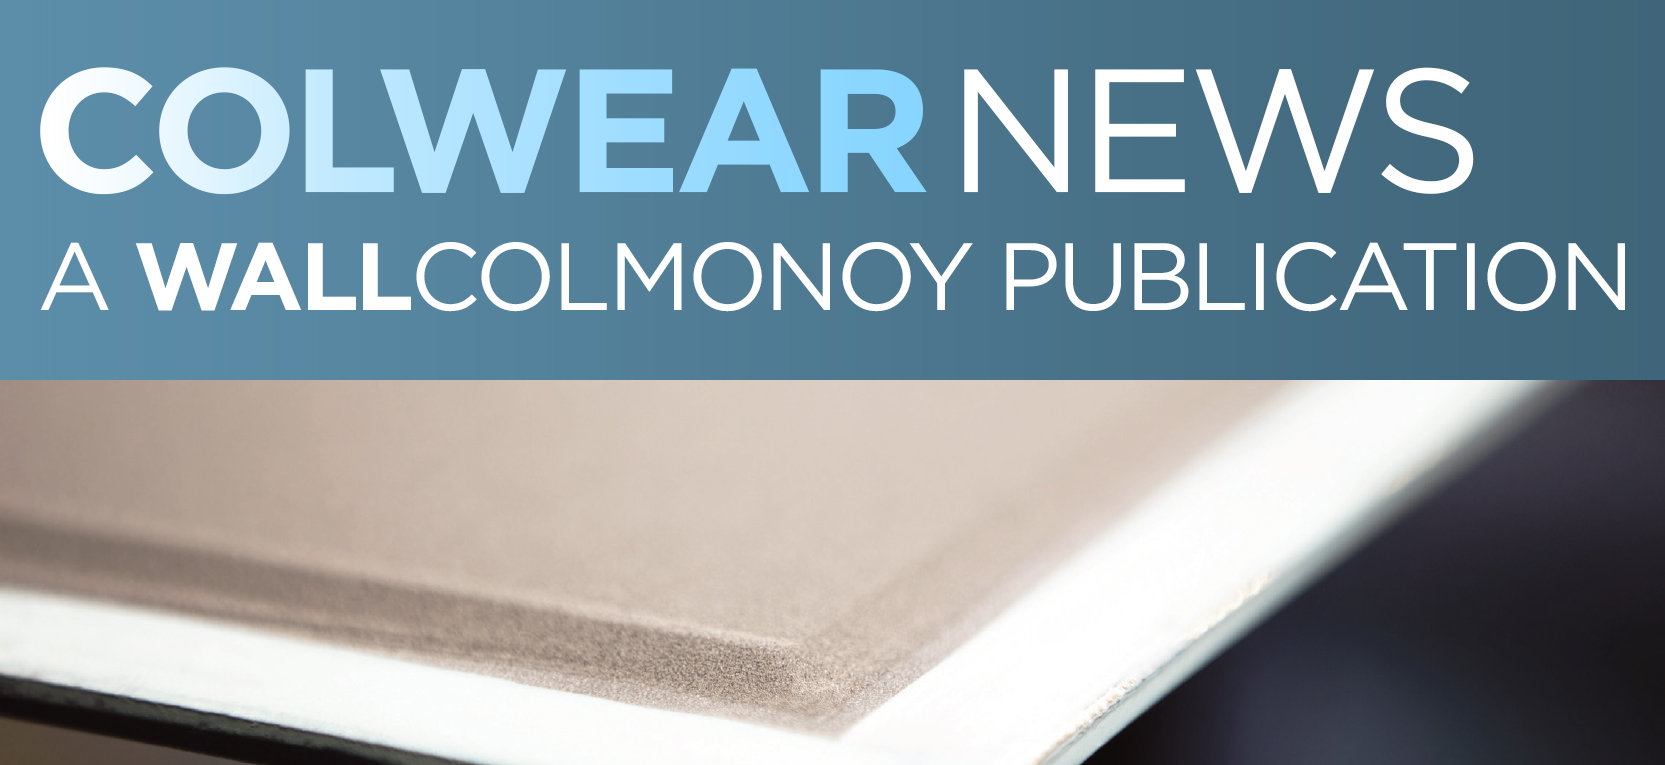 <h1>ColWear News</h1>